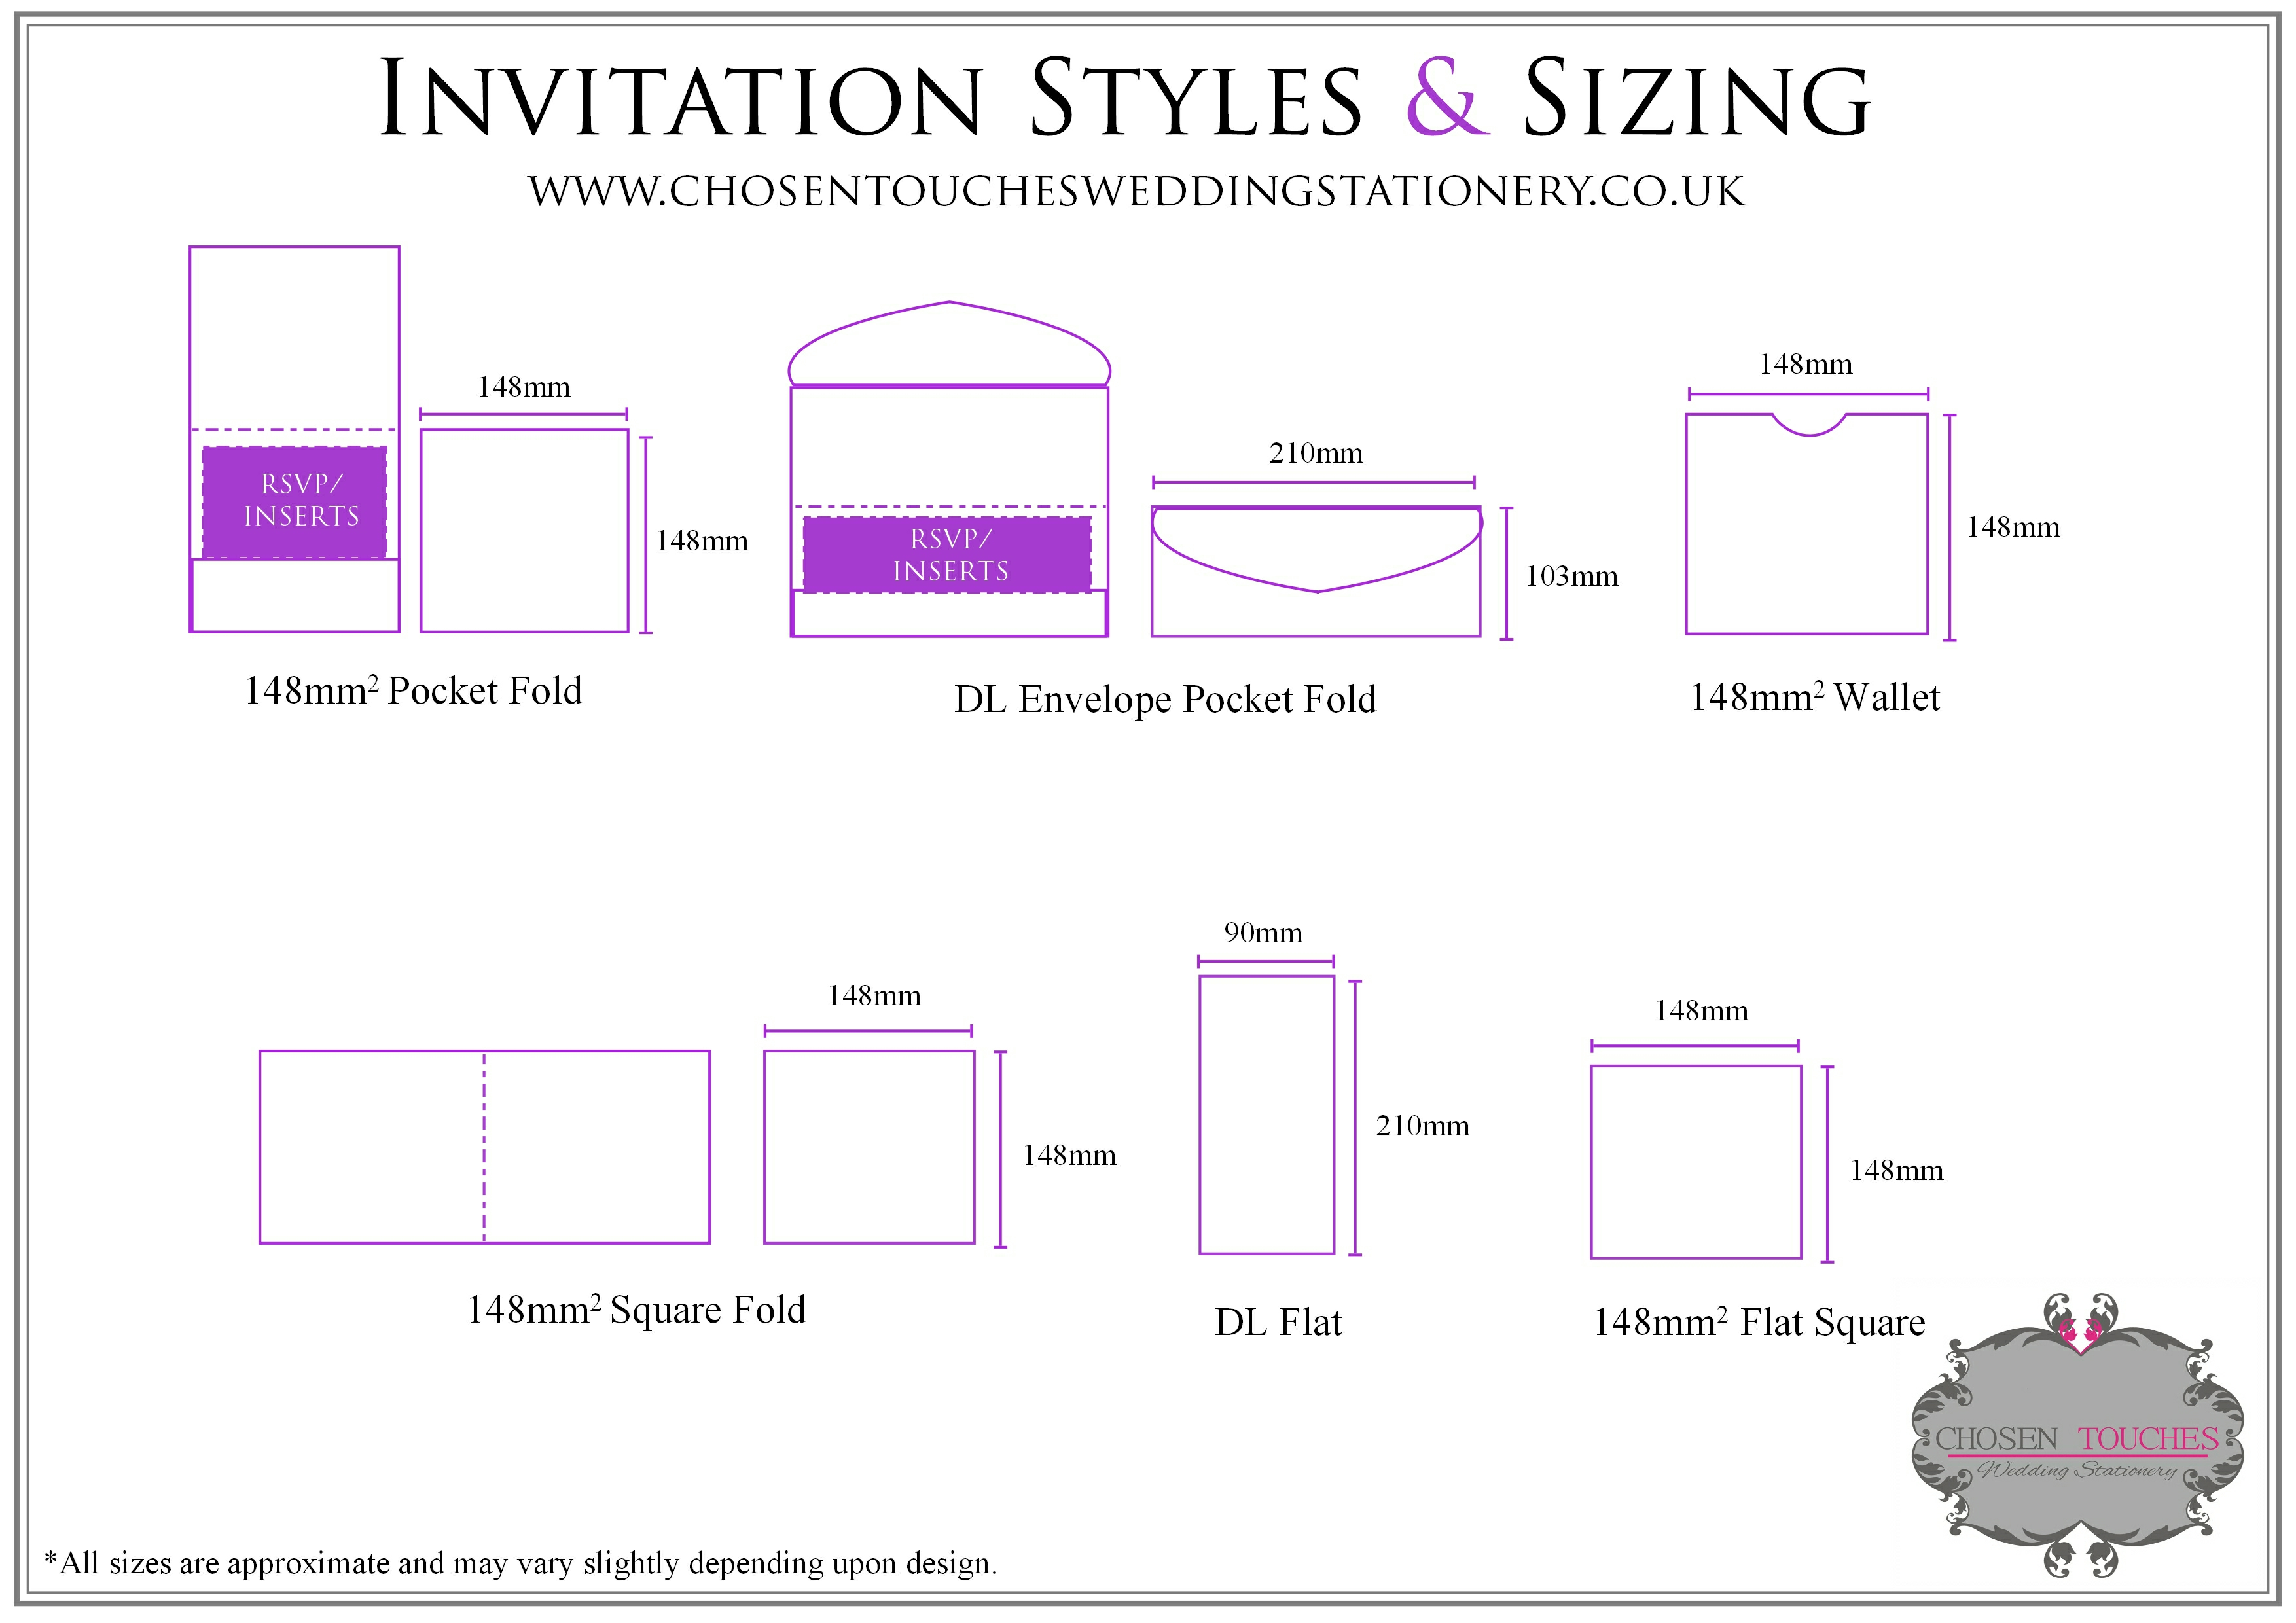 birthday party invitation size ; wedding-invitation-size-together-with-a-picturesque-view-of-your-Wedding-Invitation-Templates-using-artistic-invitations-10